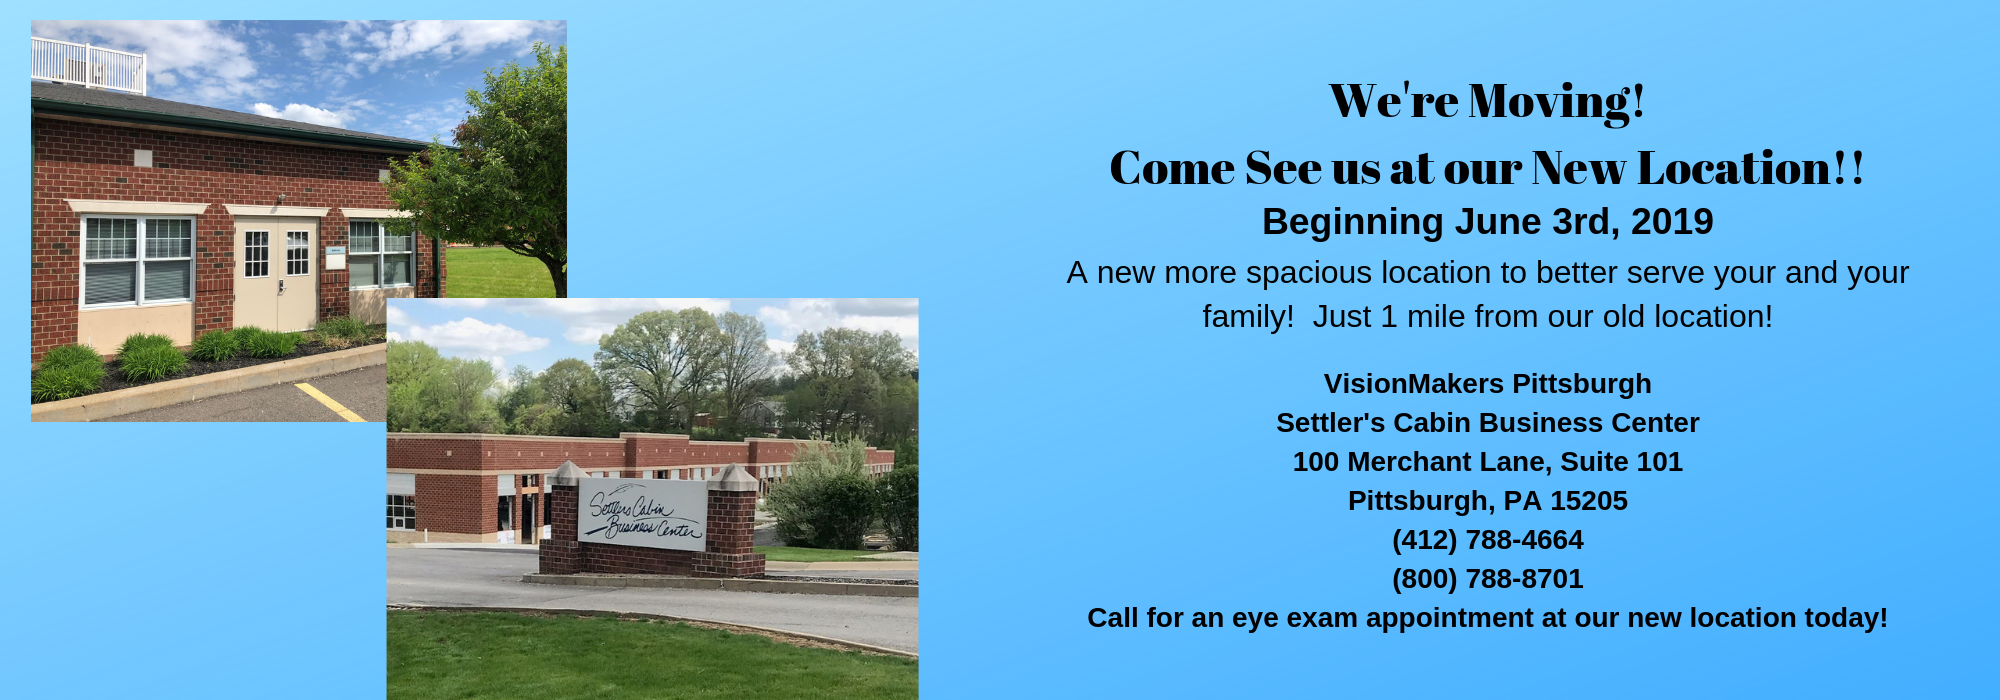 Were-Moving-Come-See-us-at-our-New-Location.png